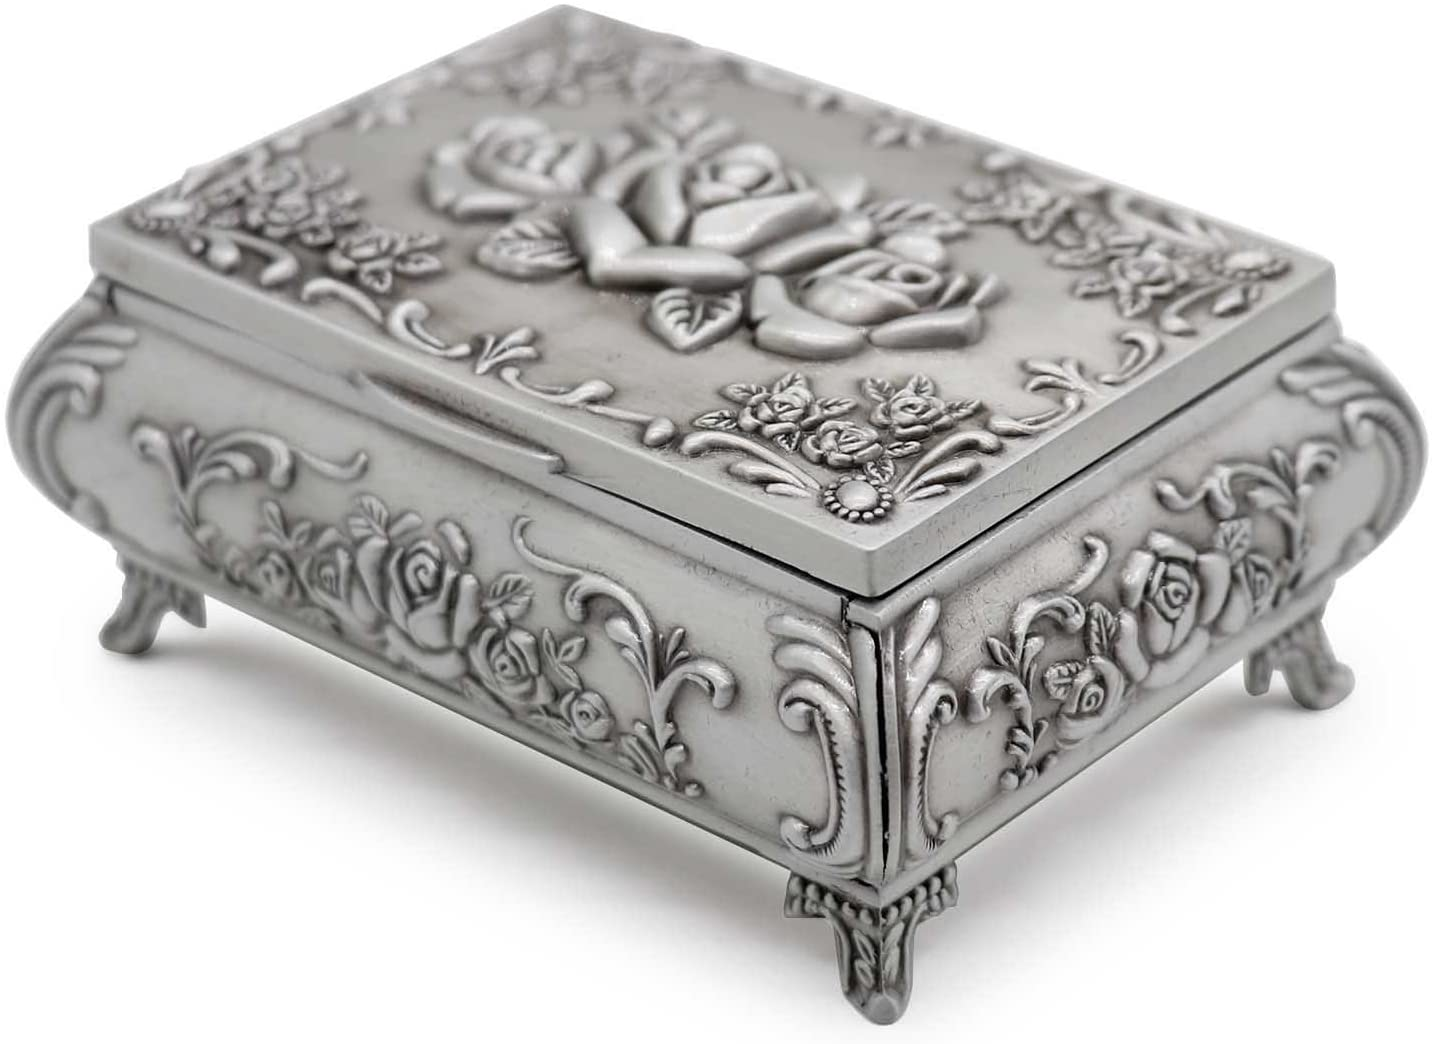 AVESON Rectangle Vintage Metal Jewelry Box Trinket Storage Organizer Gift Box Chest Ring Case with Rose Pattern for Girls Ladies Women, Small